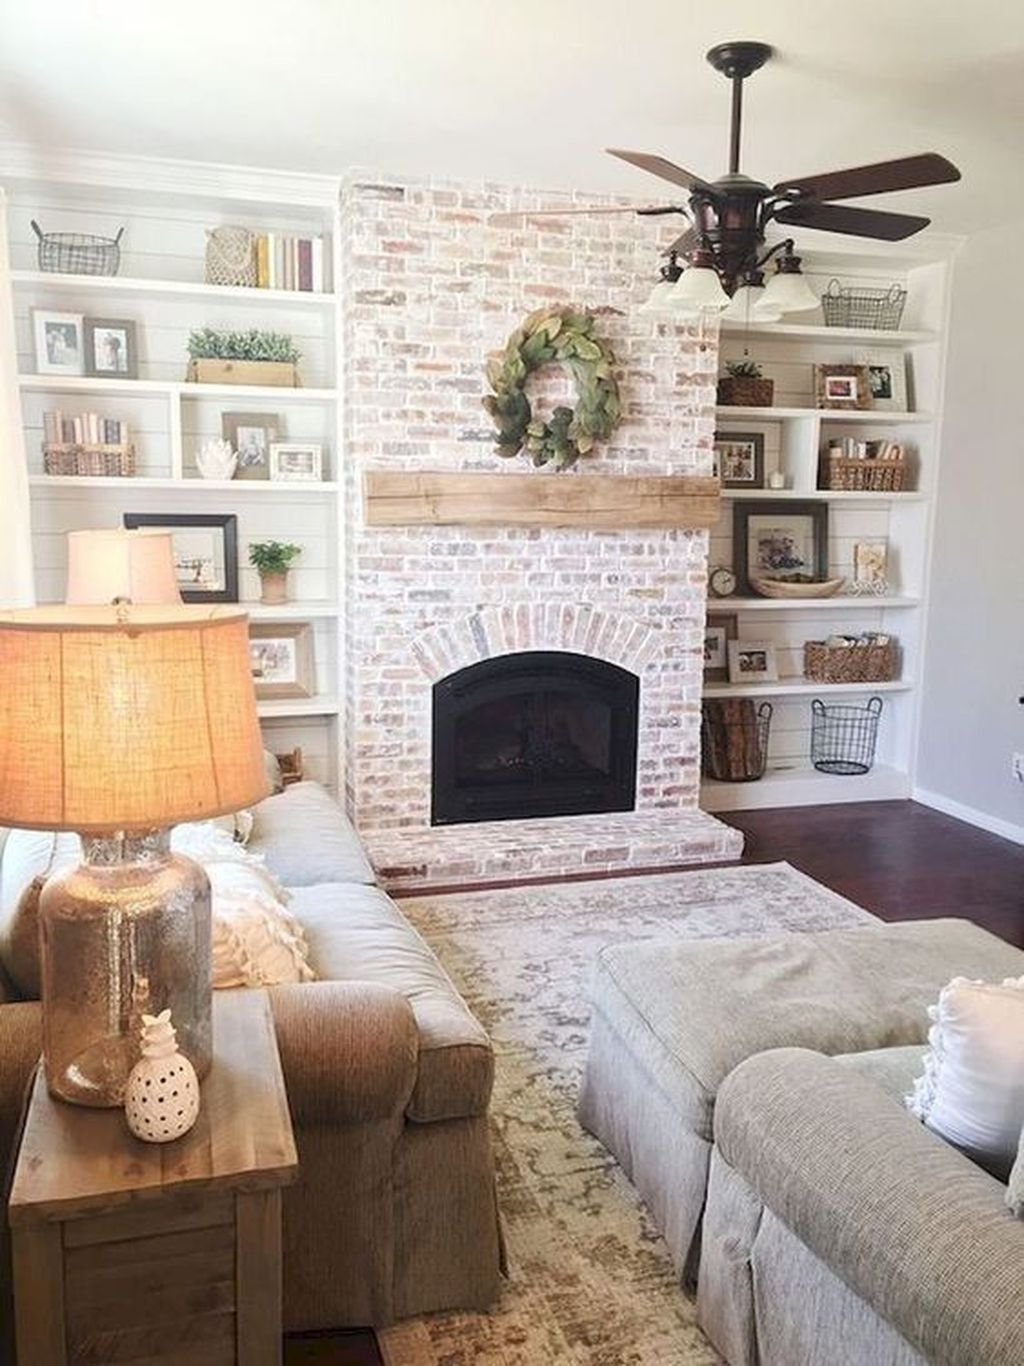 Admirable Farmhouse Living Room Decor Ideas 21